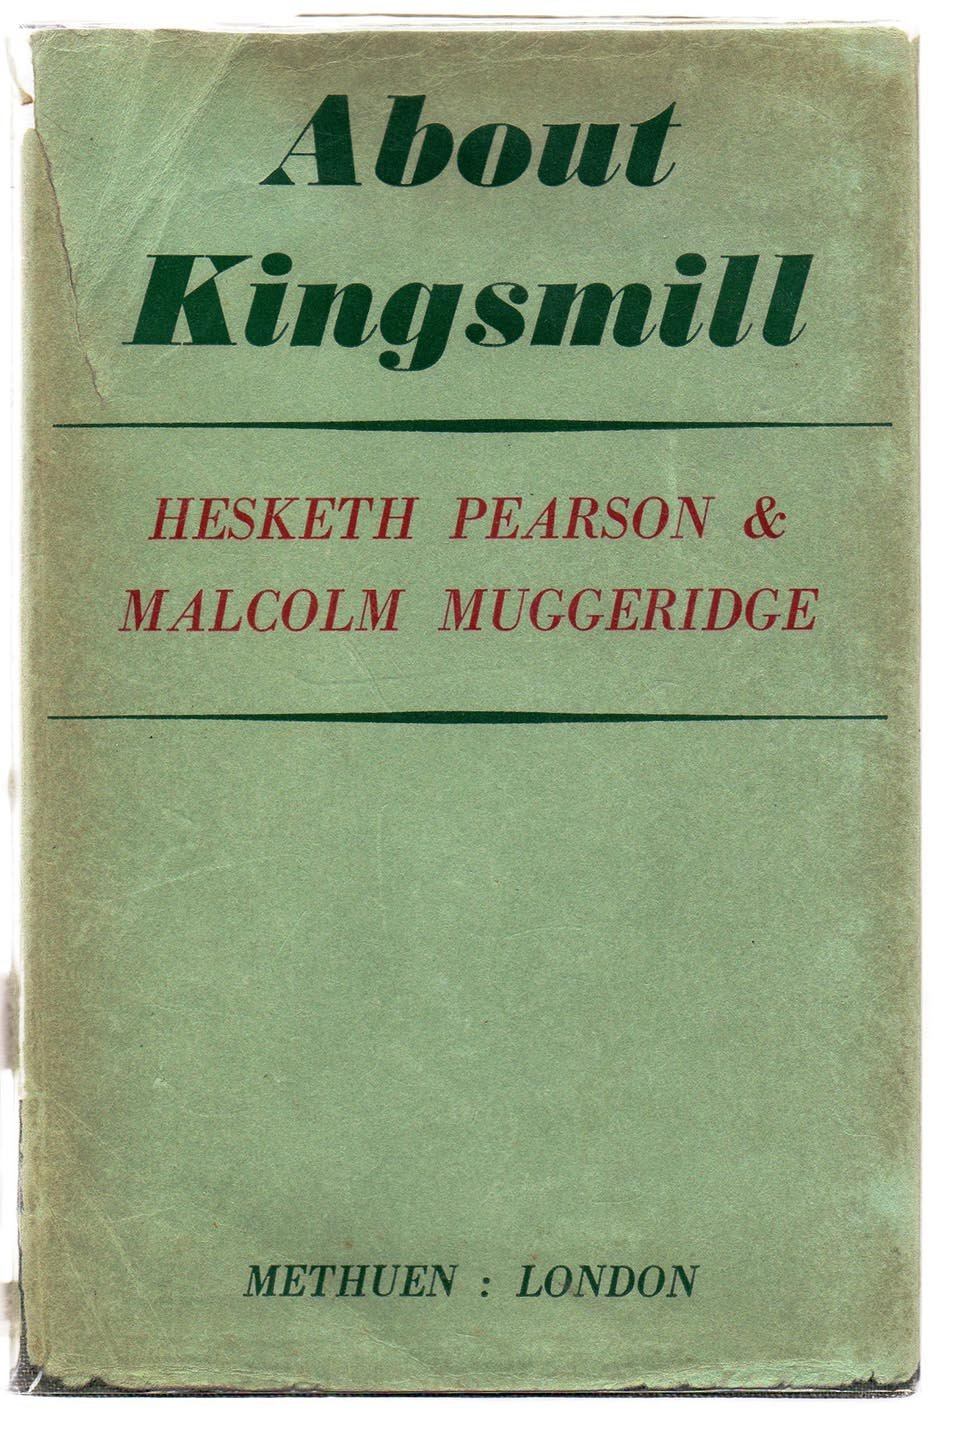 About Kingsmill